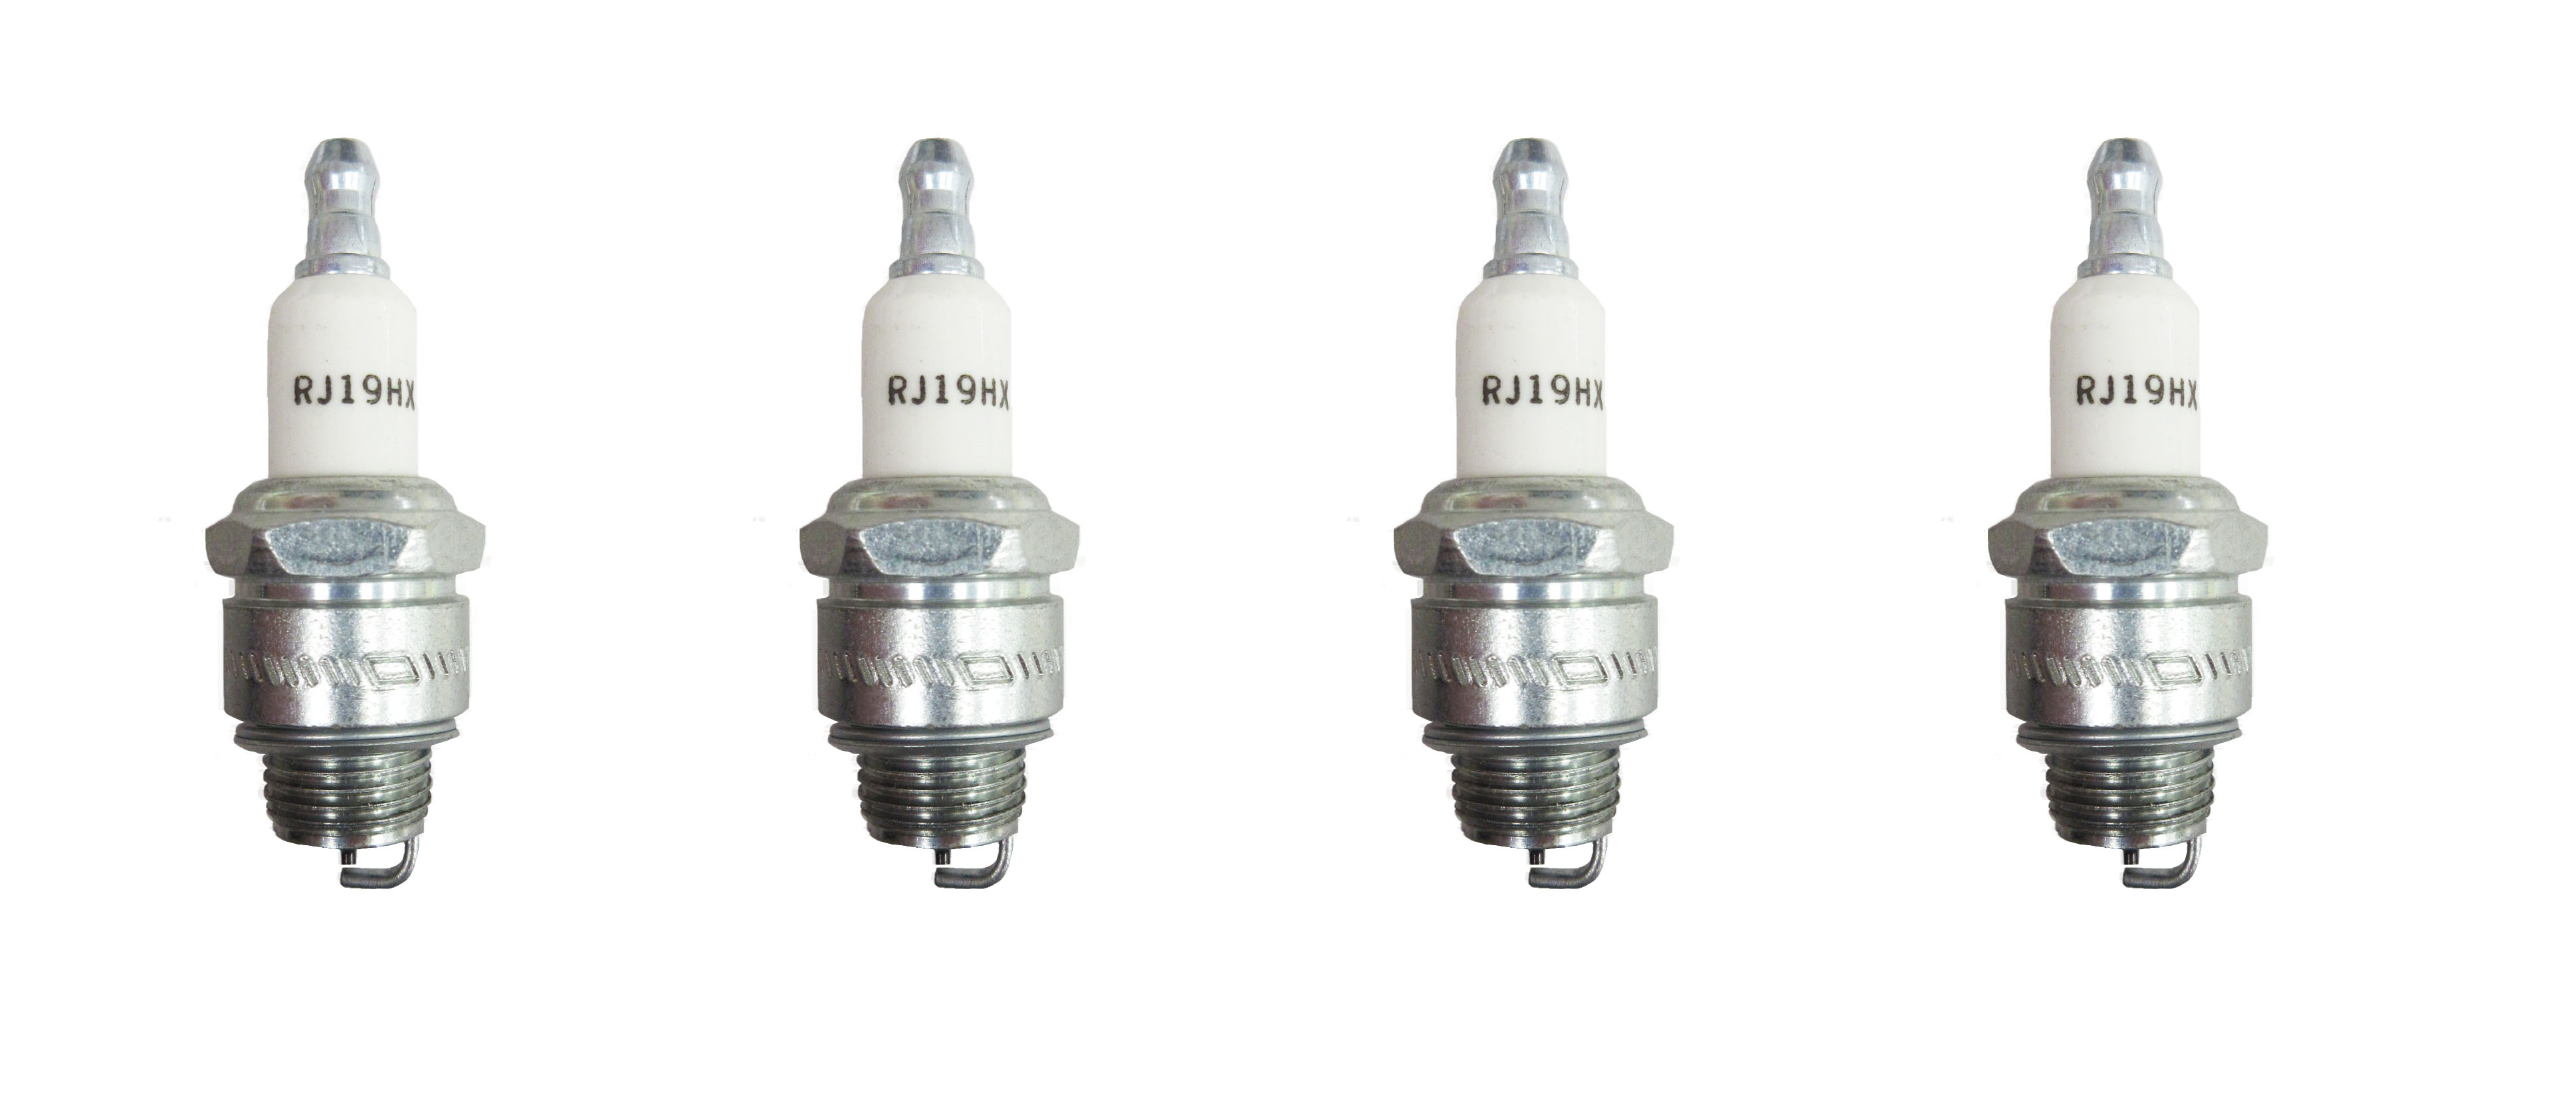 Champion 973 Rj19hx Small Engine Spark Plug Pack Of 4